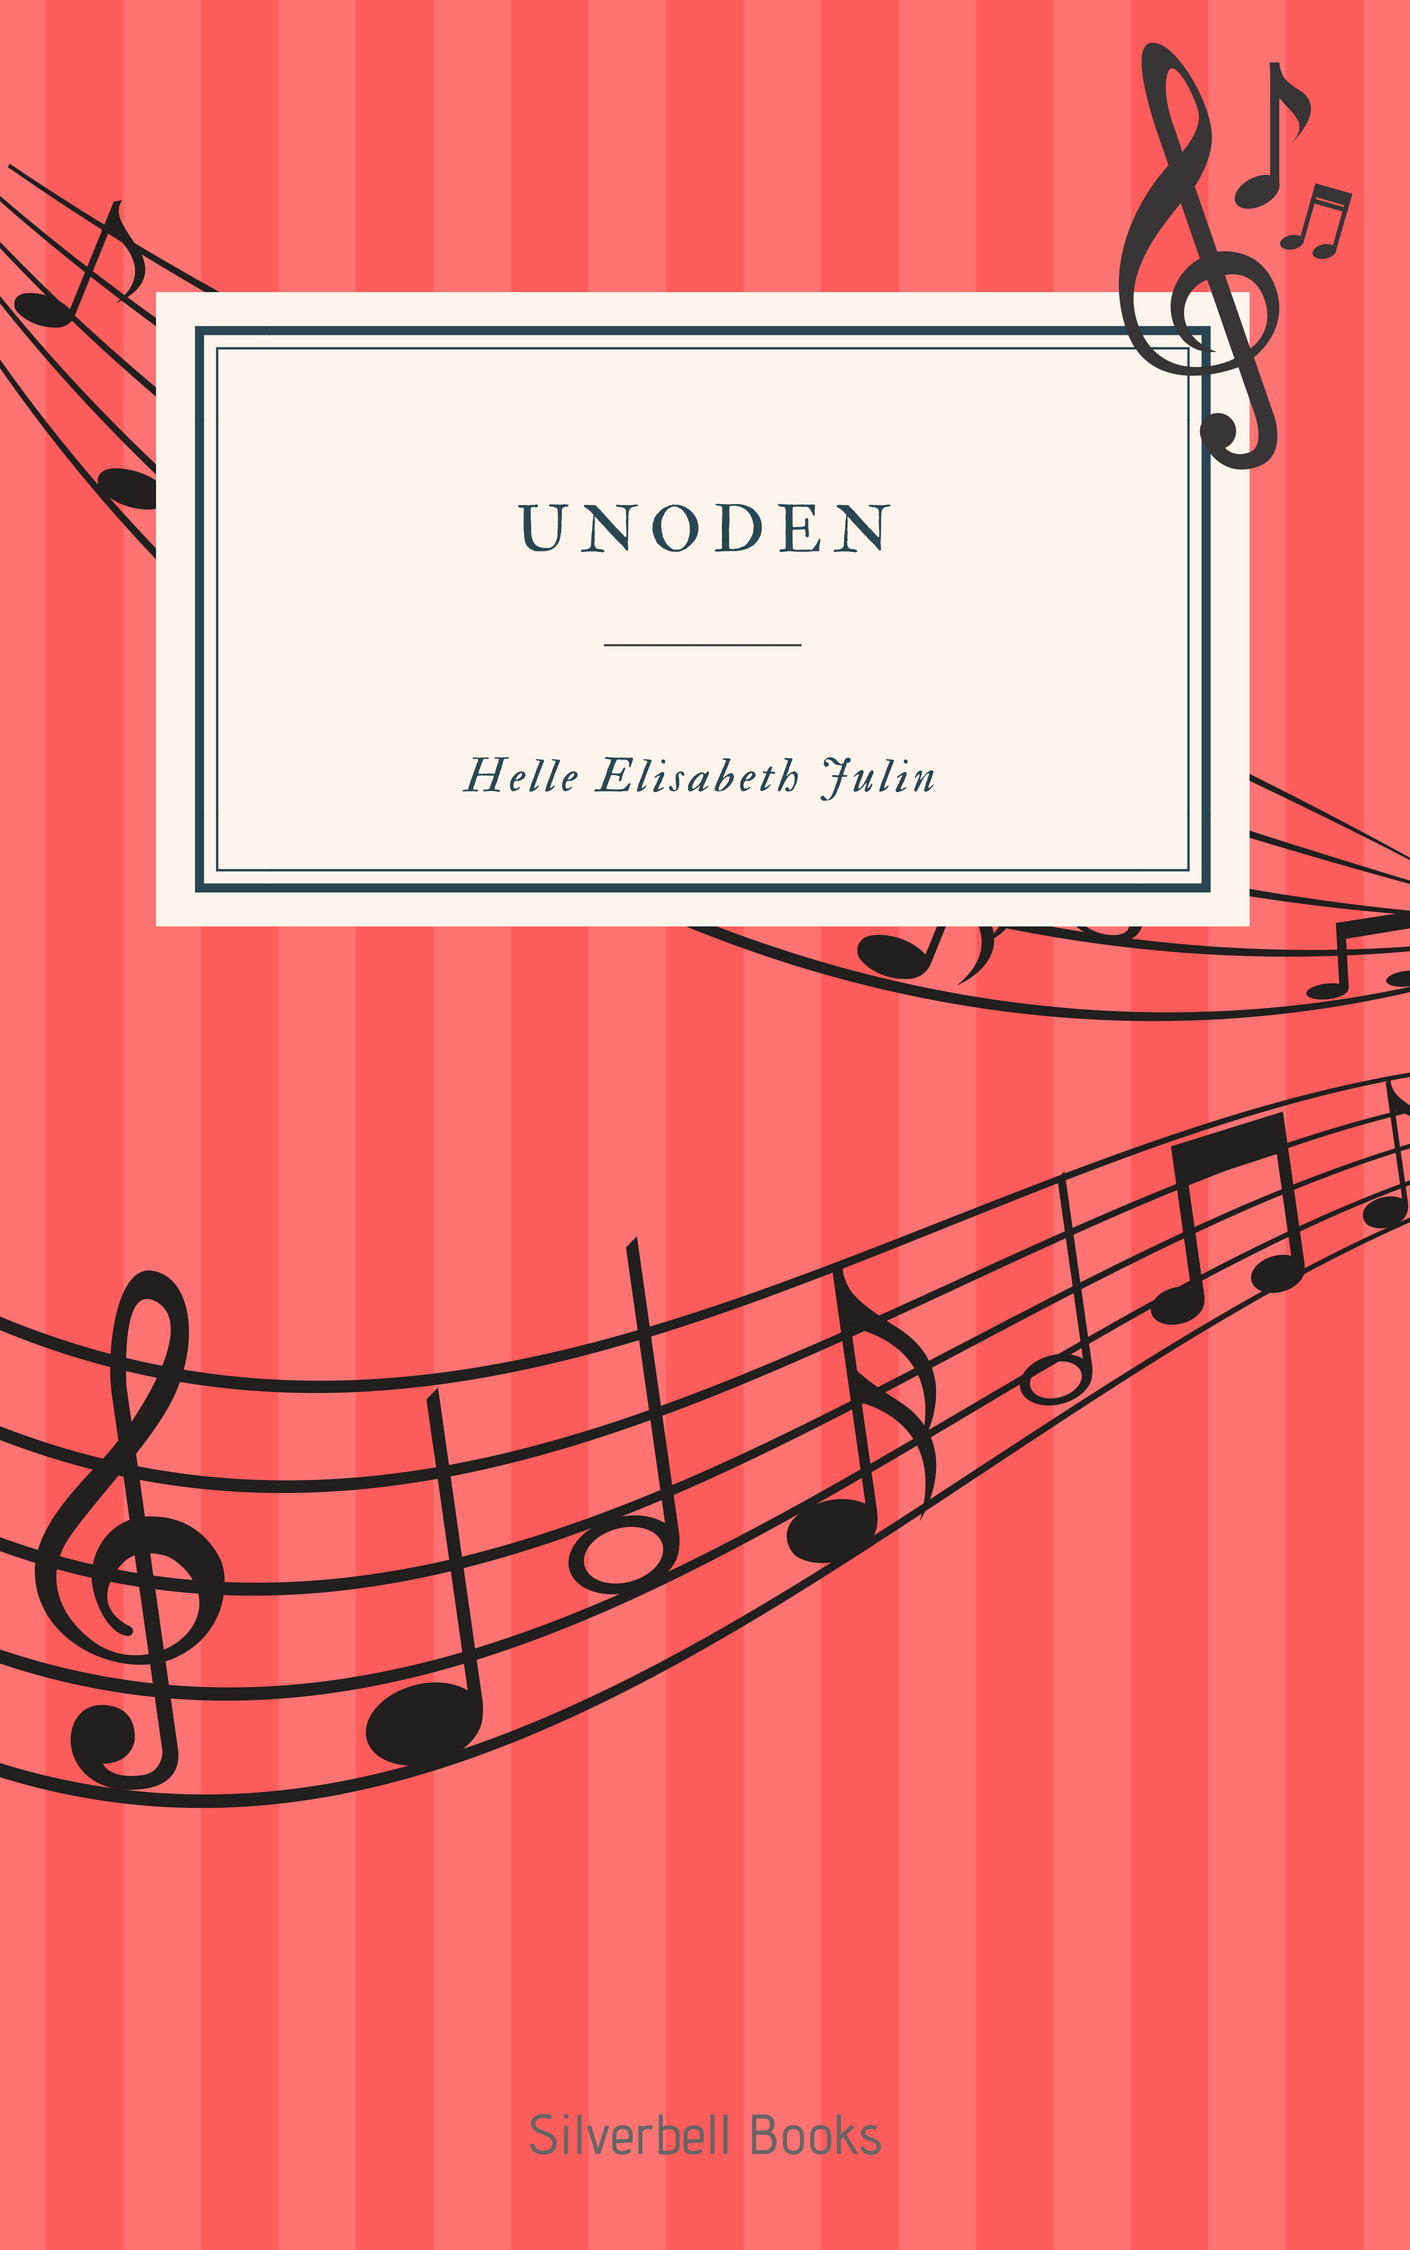 Copy of Unoden